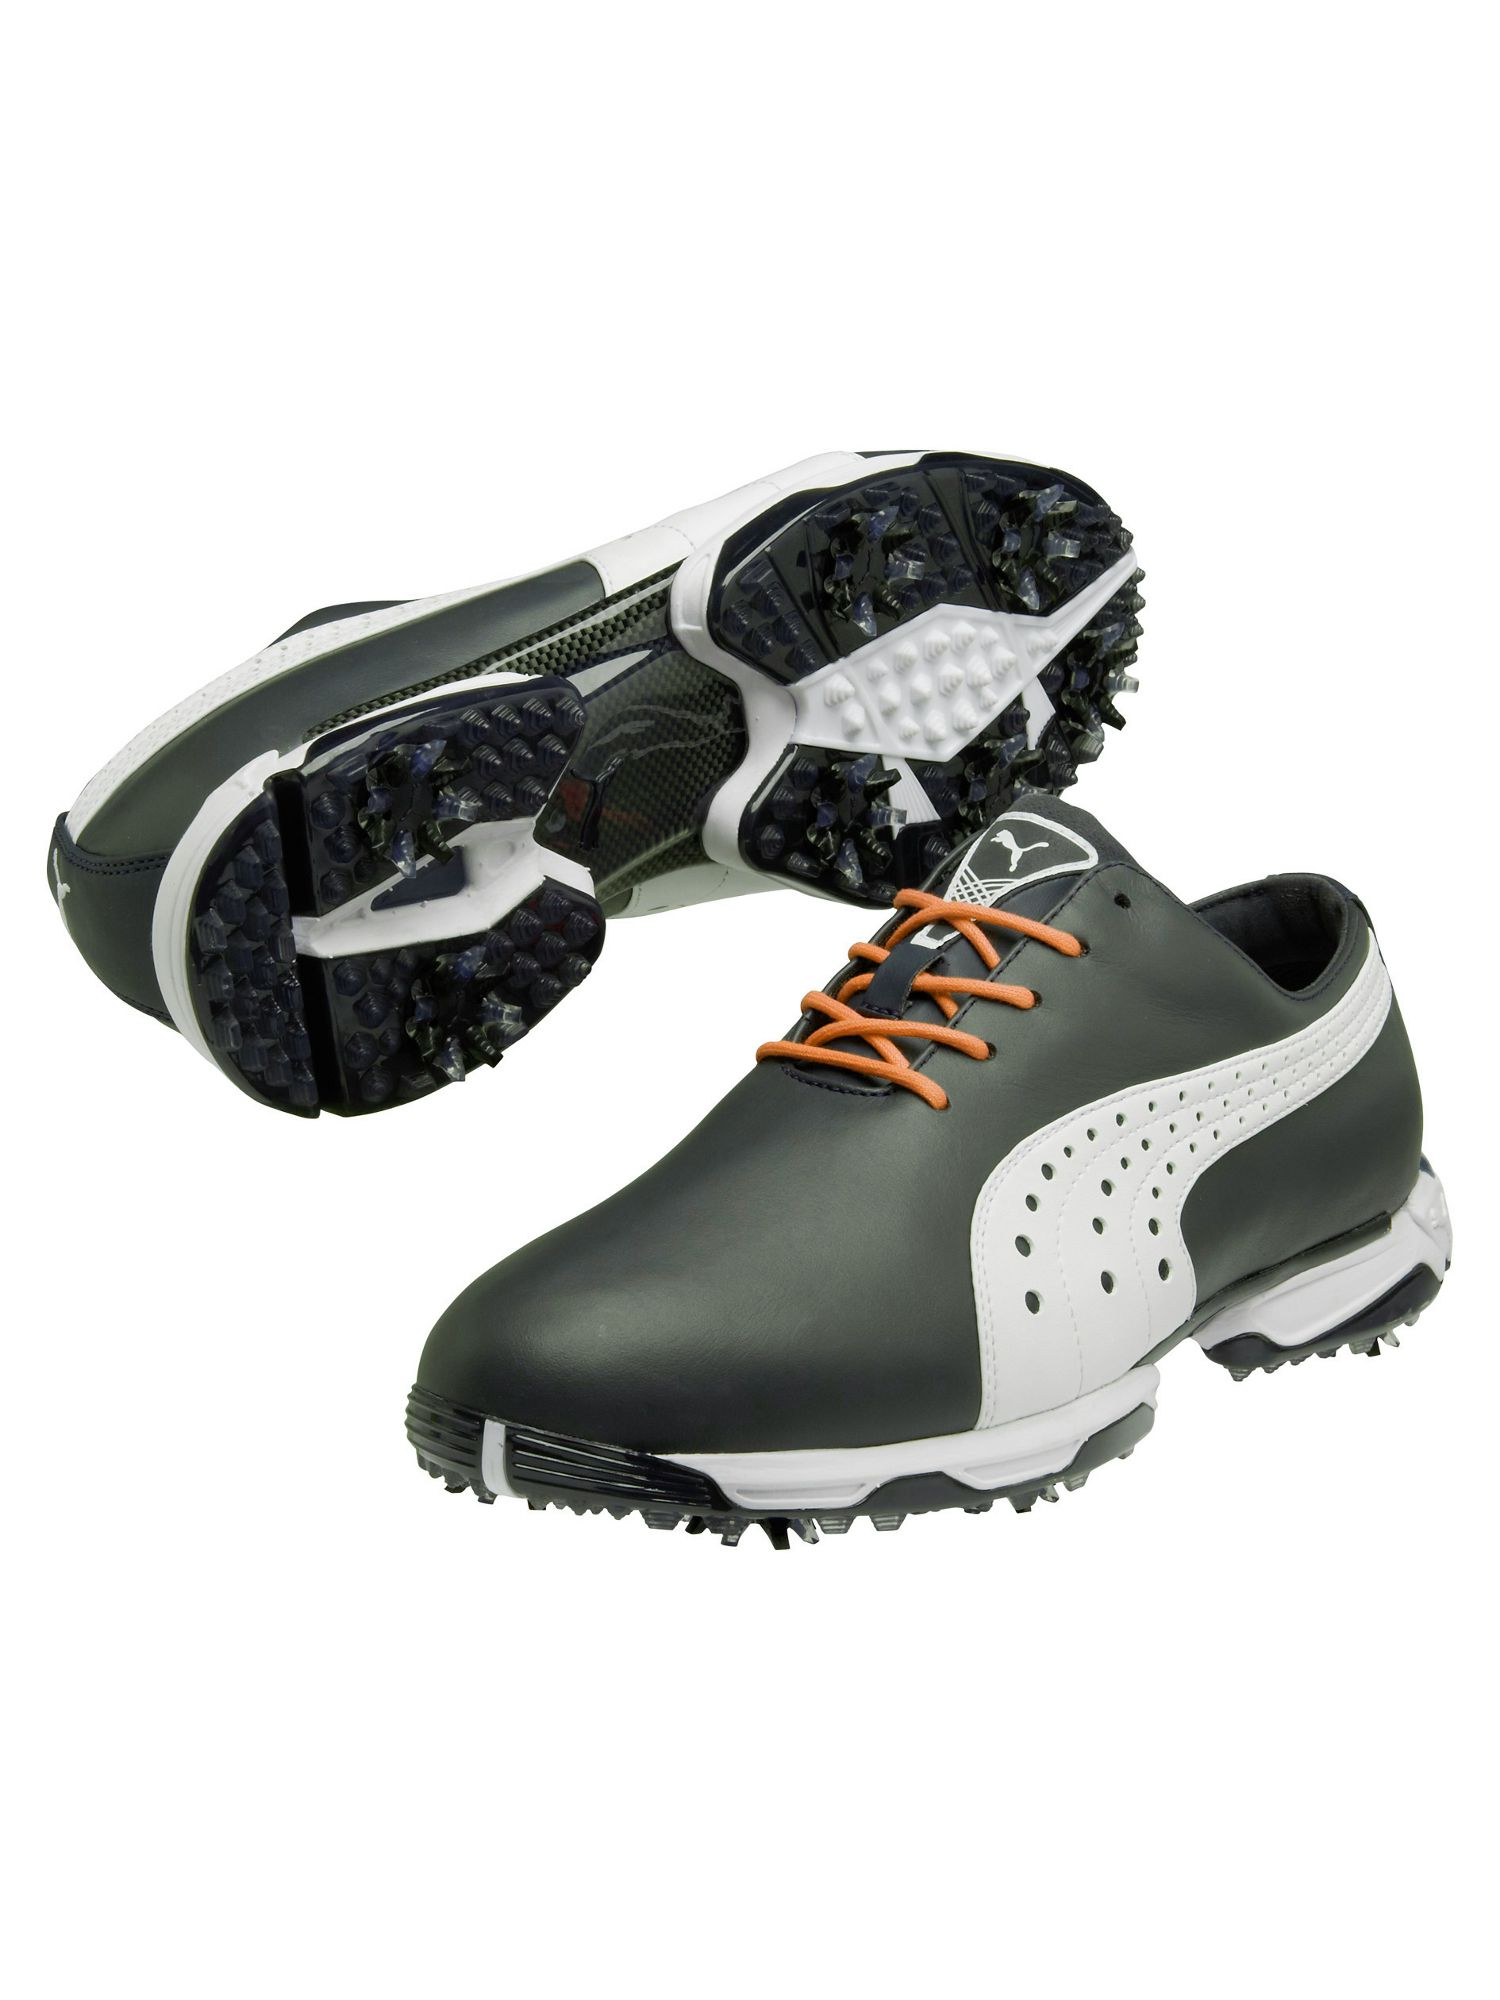 Neolux golf shoes